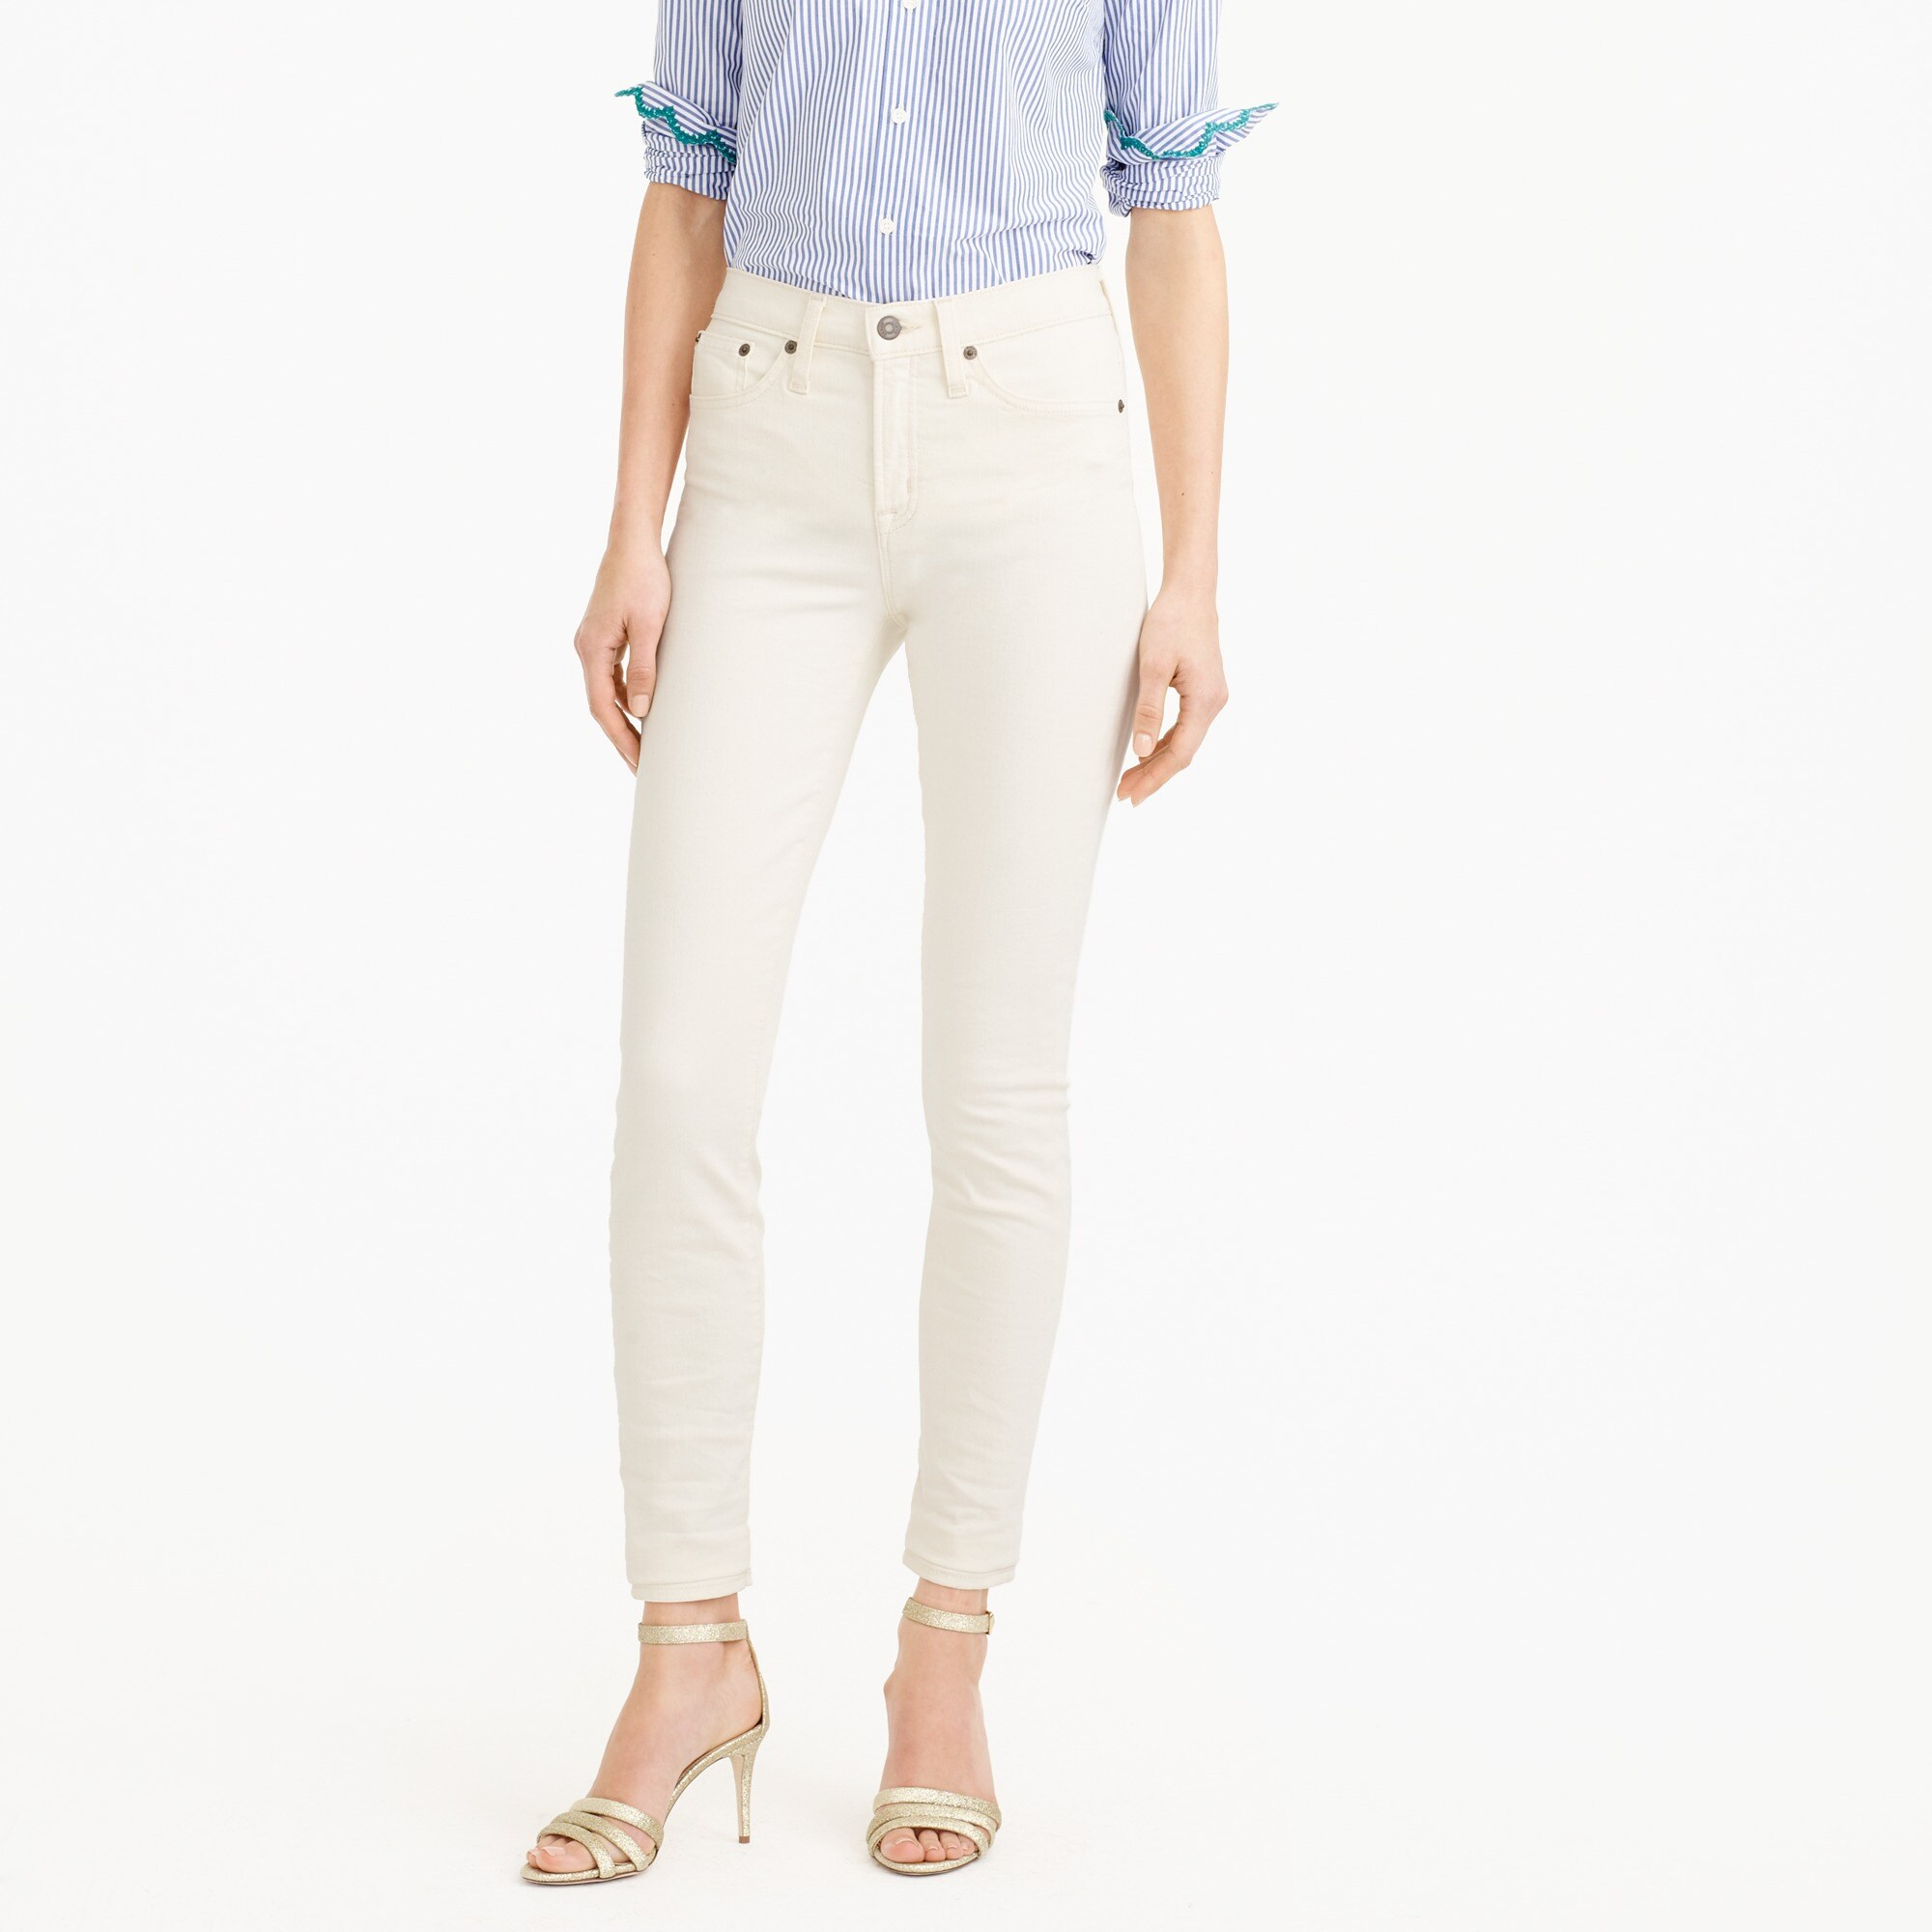 "9"" lookout jean in ecru : women white denim"